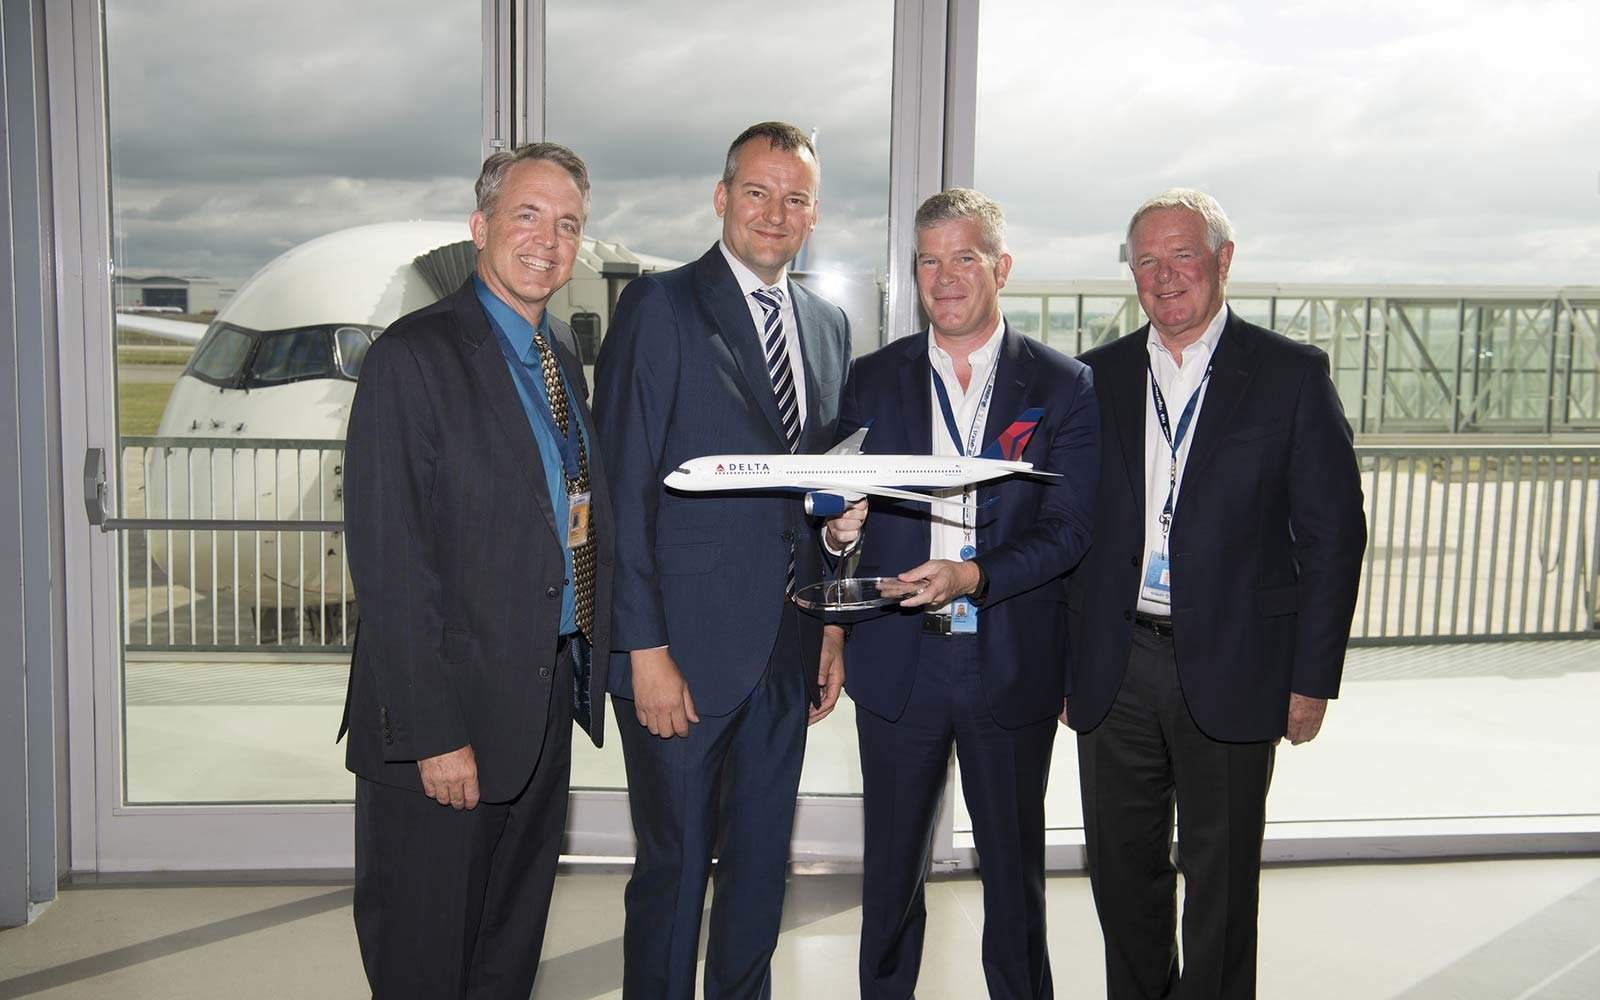 Delta Airlines Airbus A350 Corporate Team